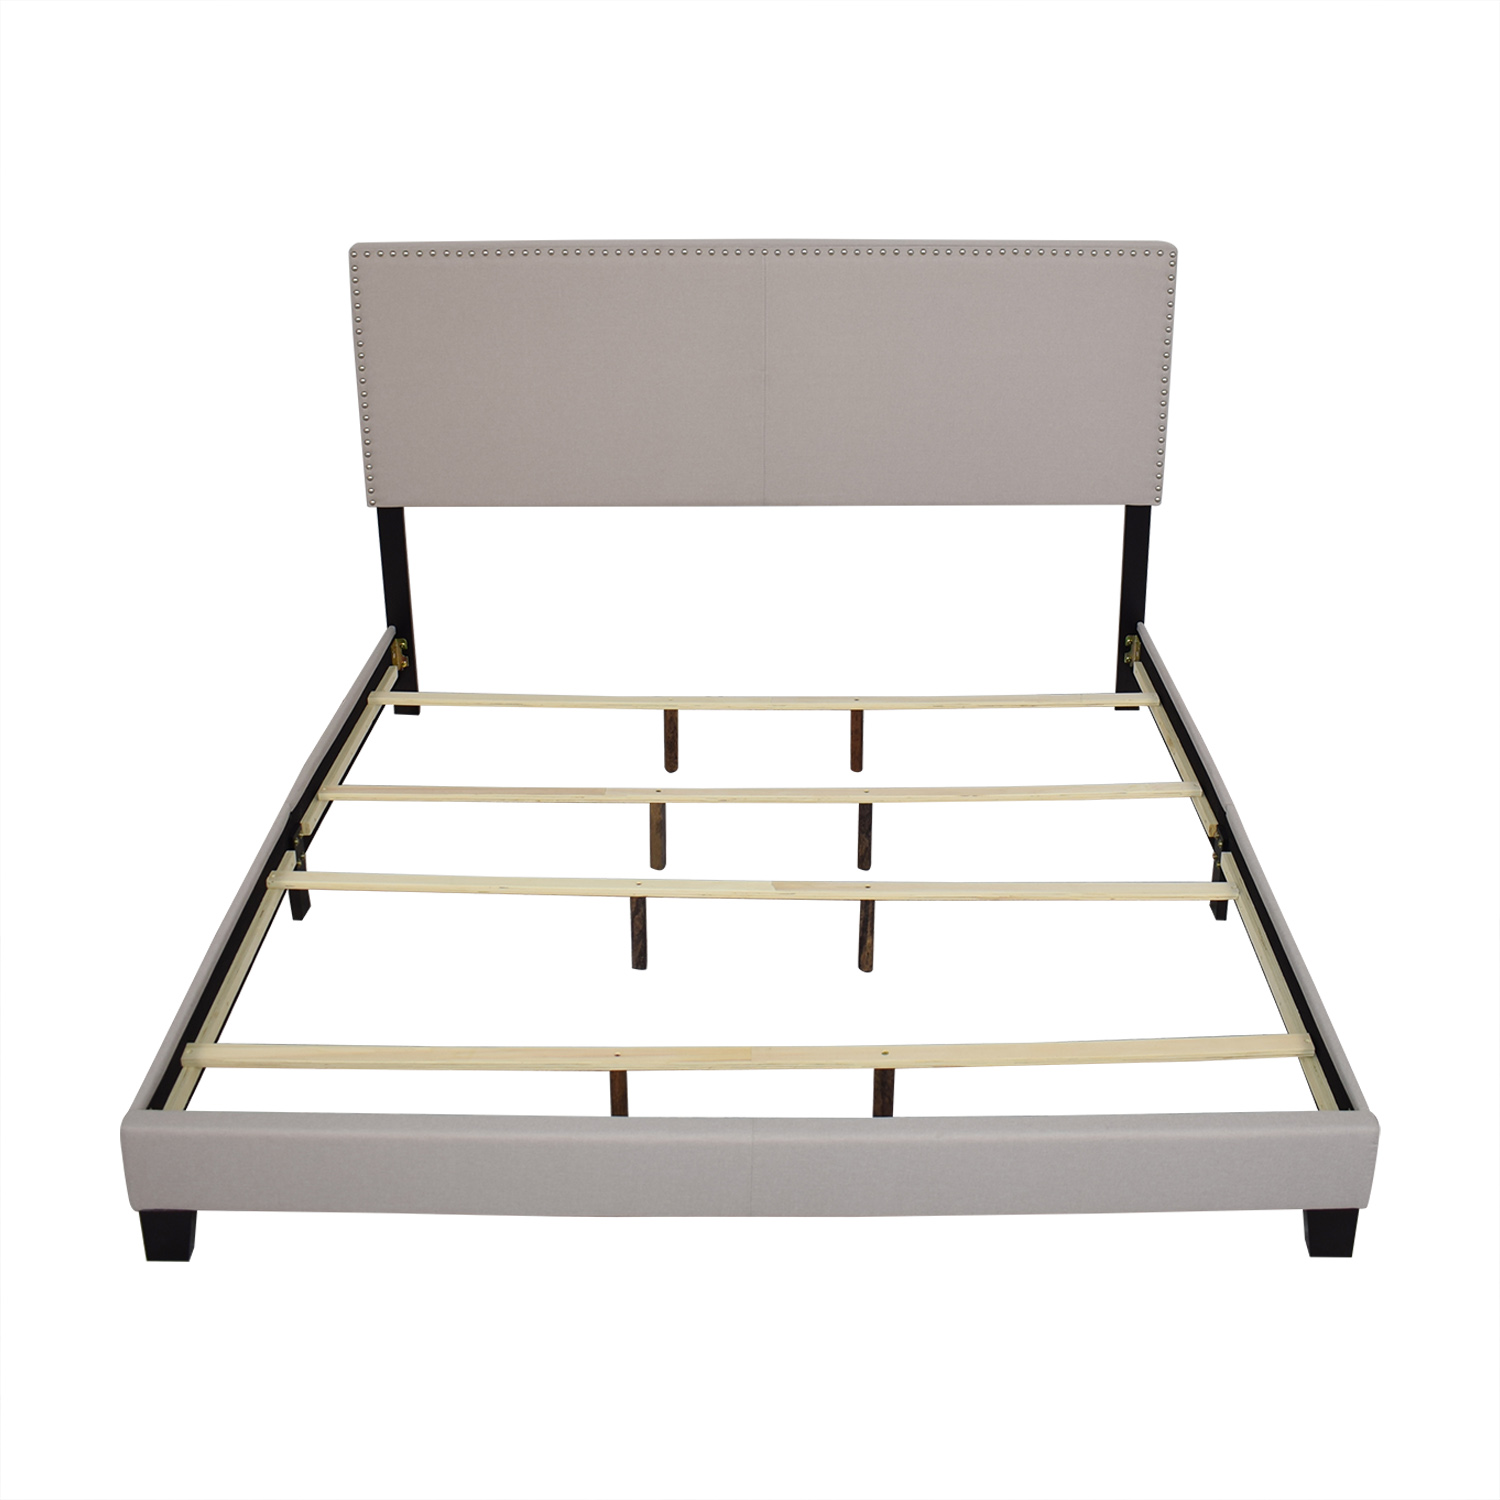 Raymour & Flanigan Raymour & Flanigan Platform King Linen Bed Beds